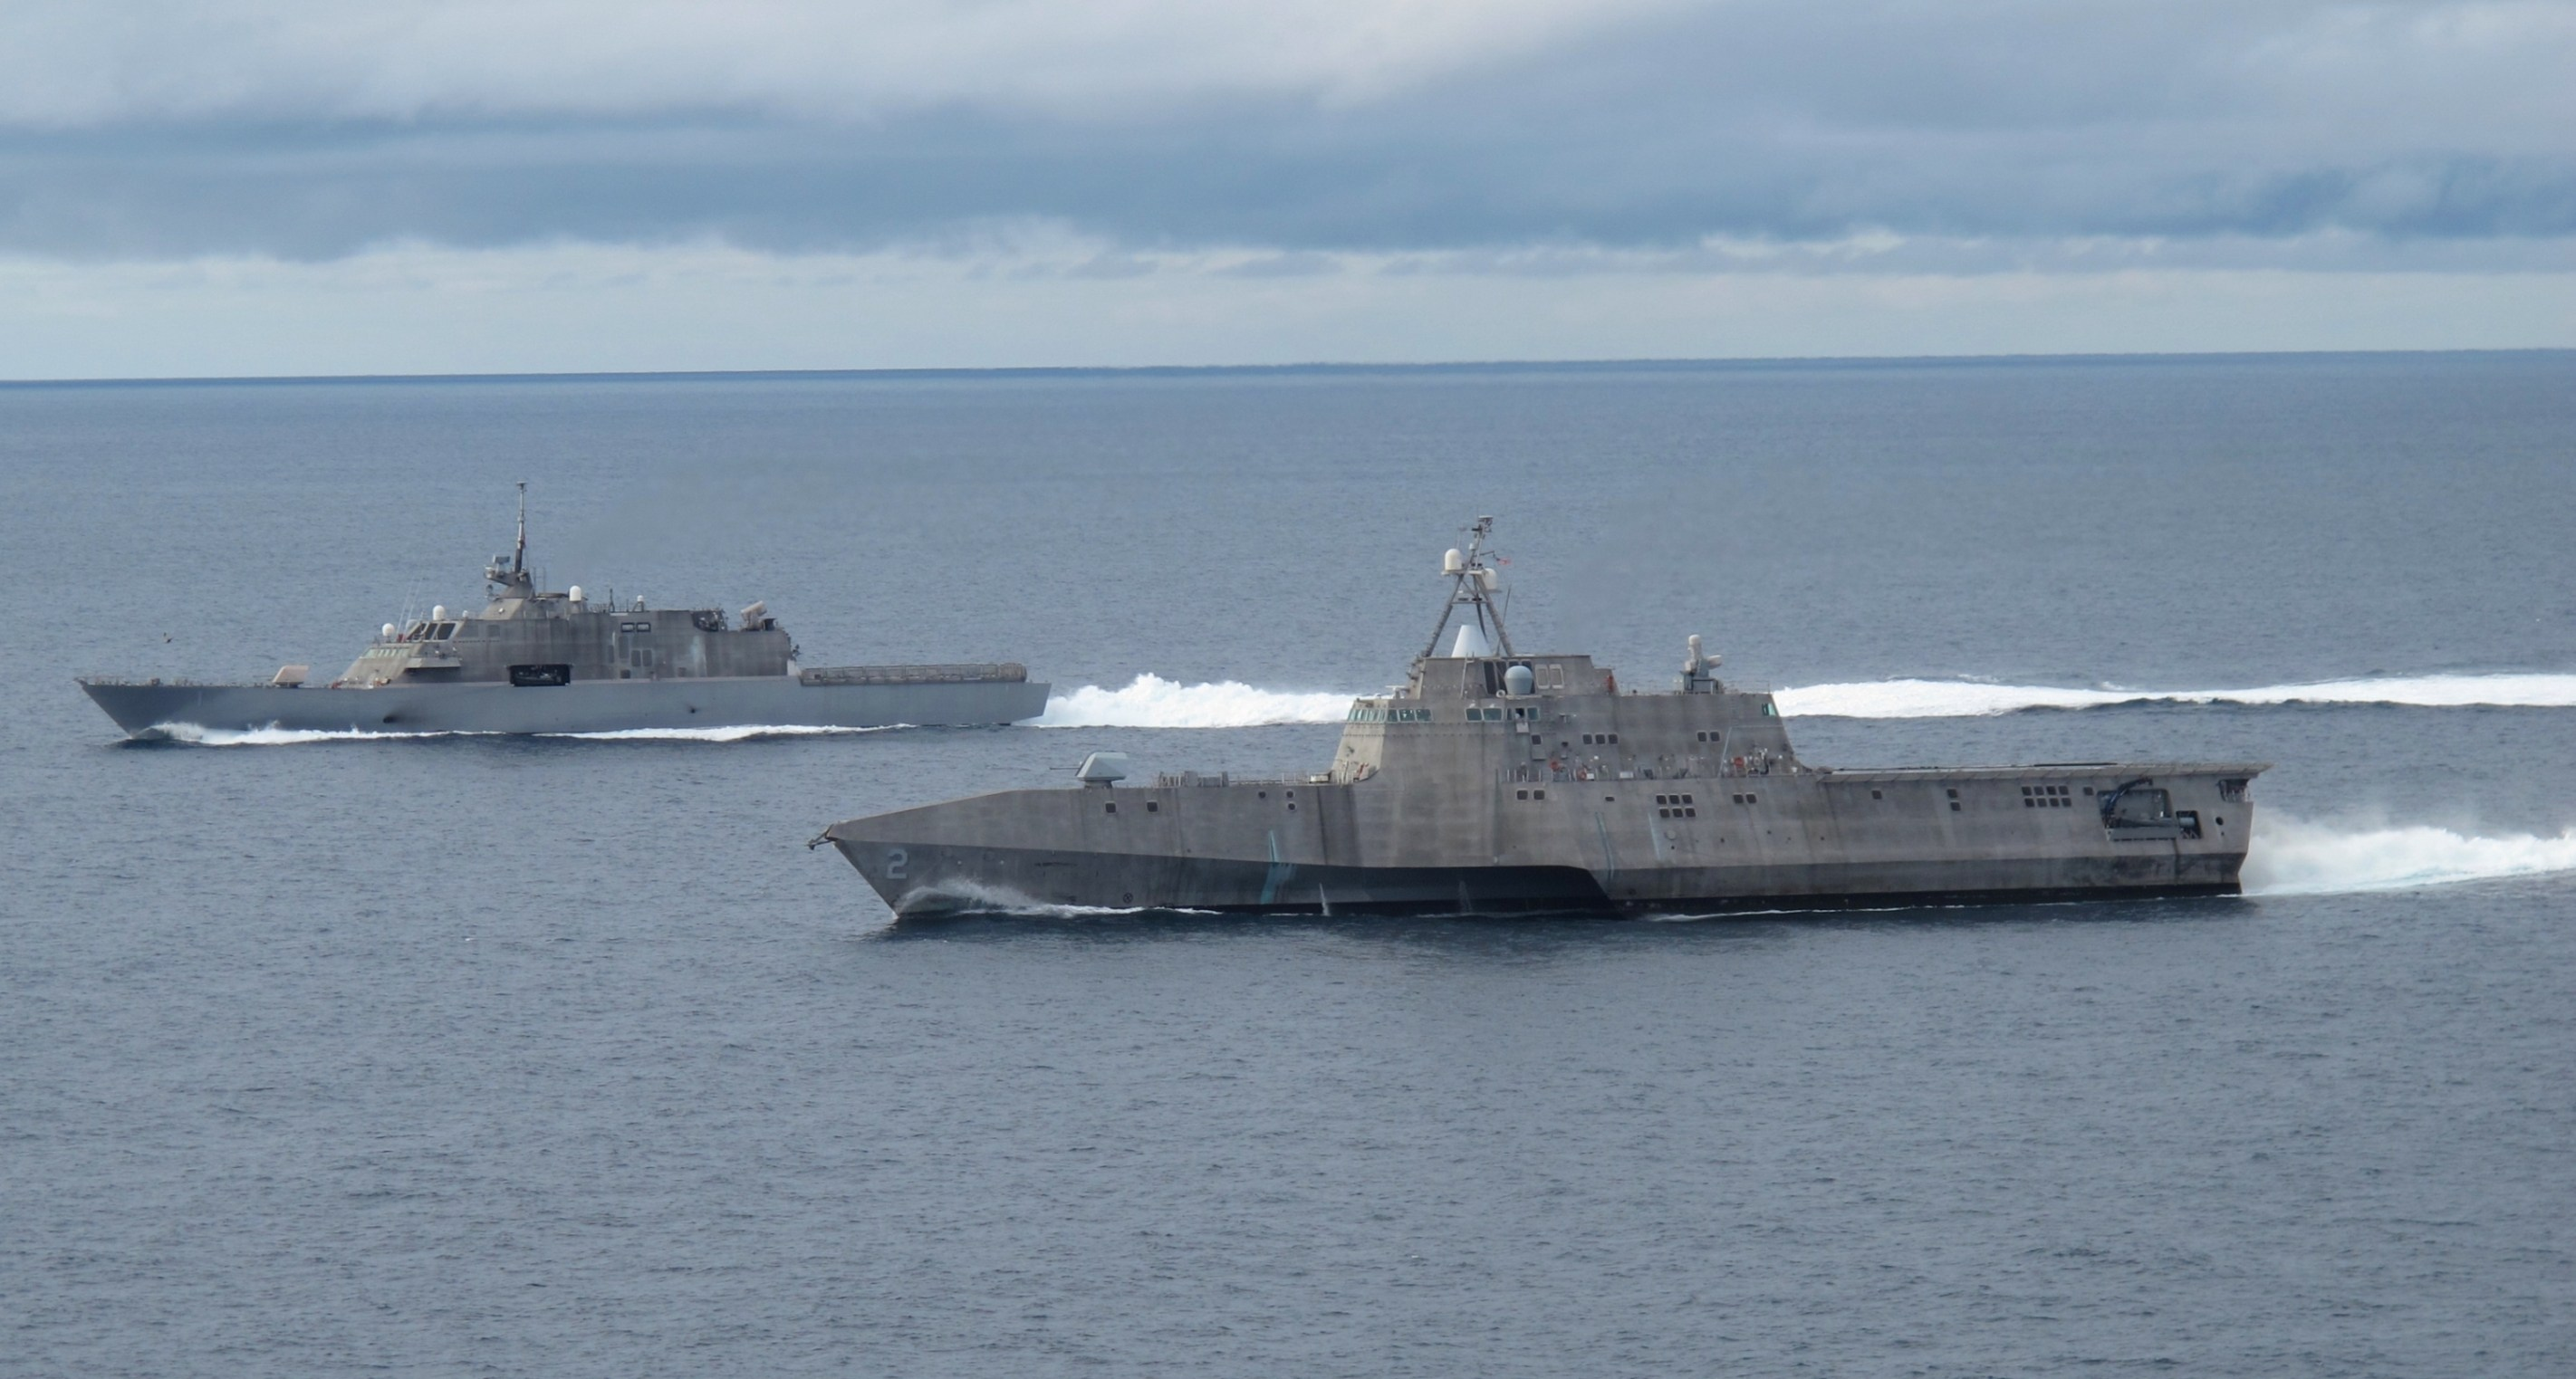 he first of class littoral combat ships USS Freedom (LCS-1), left, and USS Independence (LCS-2), maneuver together during an exercise